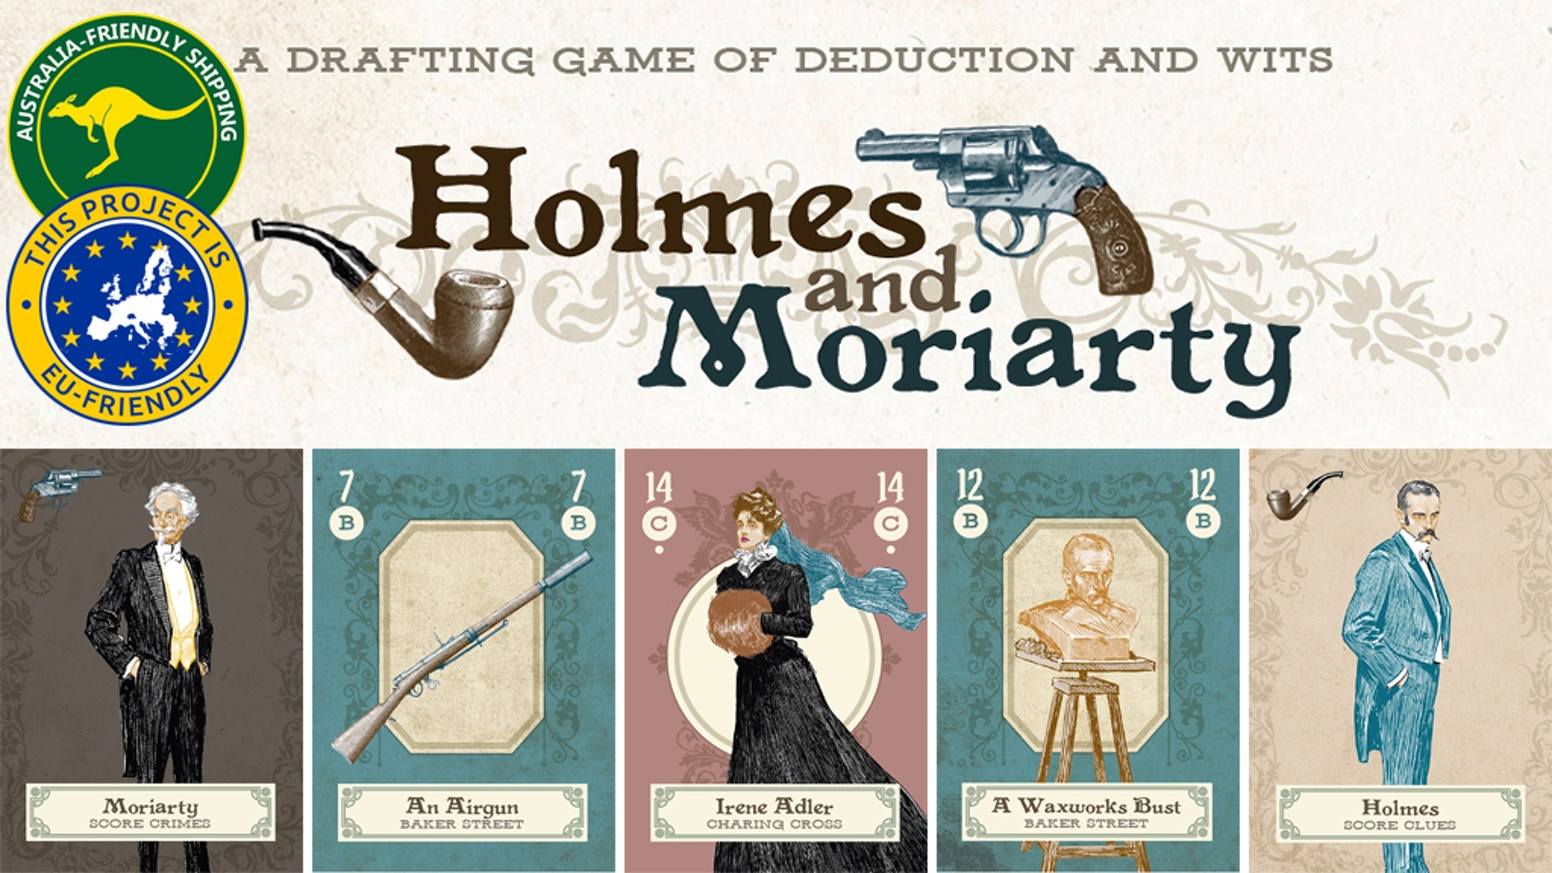 A card drafting game of deduction and wits for 2 players. It's Sherlock Holmes versus Professor Moriarty. Who will win?